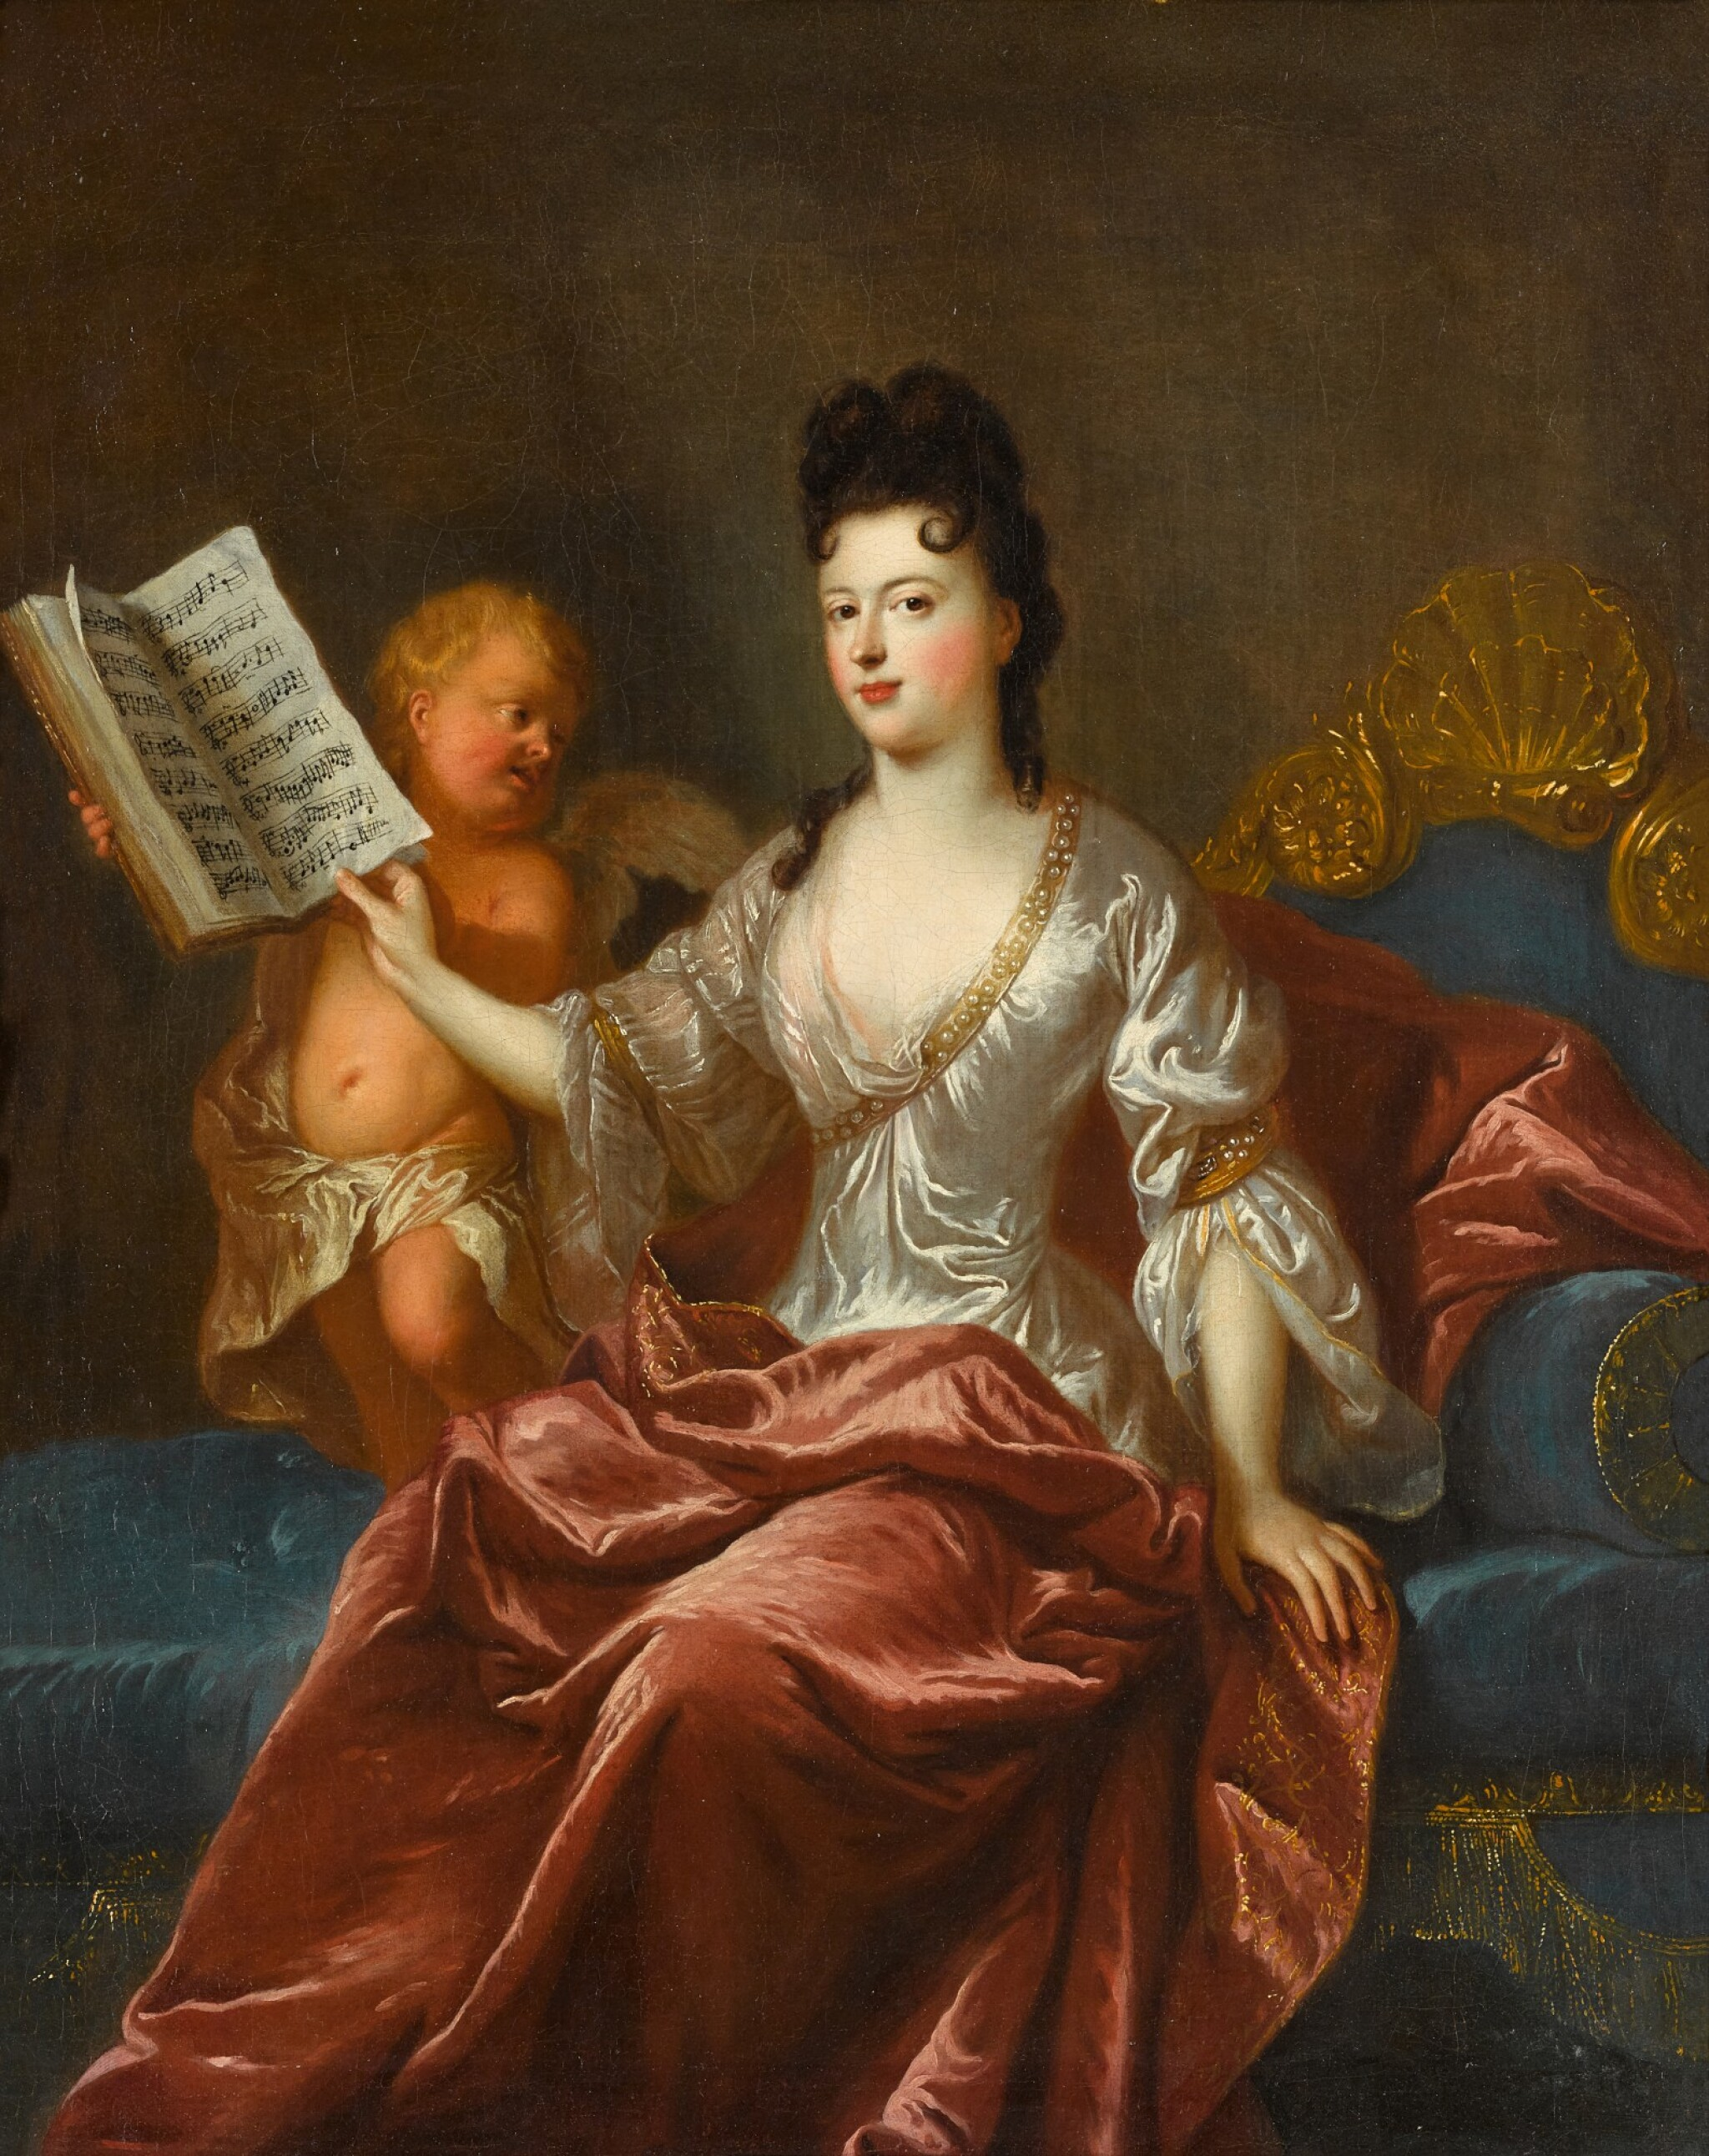 View full screen - View 1 of Lot 3. FRANÇOIS DE TROY     PORTRAIT OF CATHERINE DE LA BOISSIÈRE, NÉE LOISON, FULL-LENGTH, SEATED ON A SOFA AND LEAFING THROUGH MUSICAL SCORES HELD BY A PUTTO.